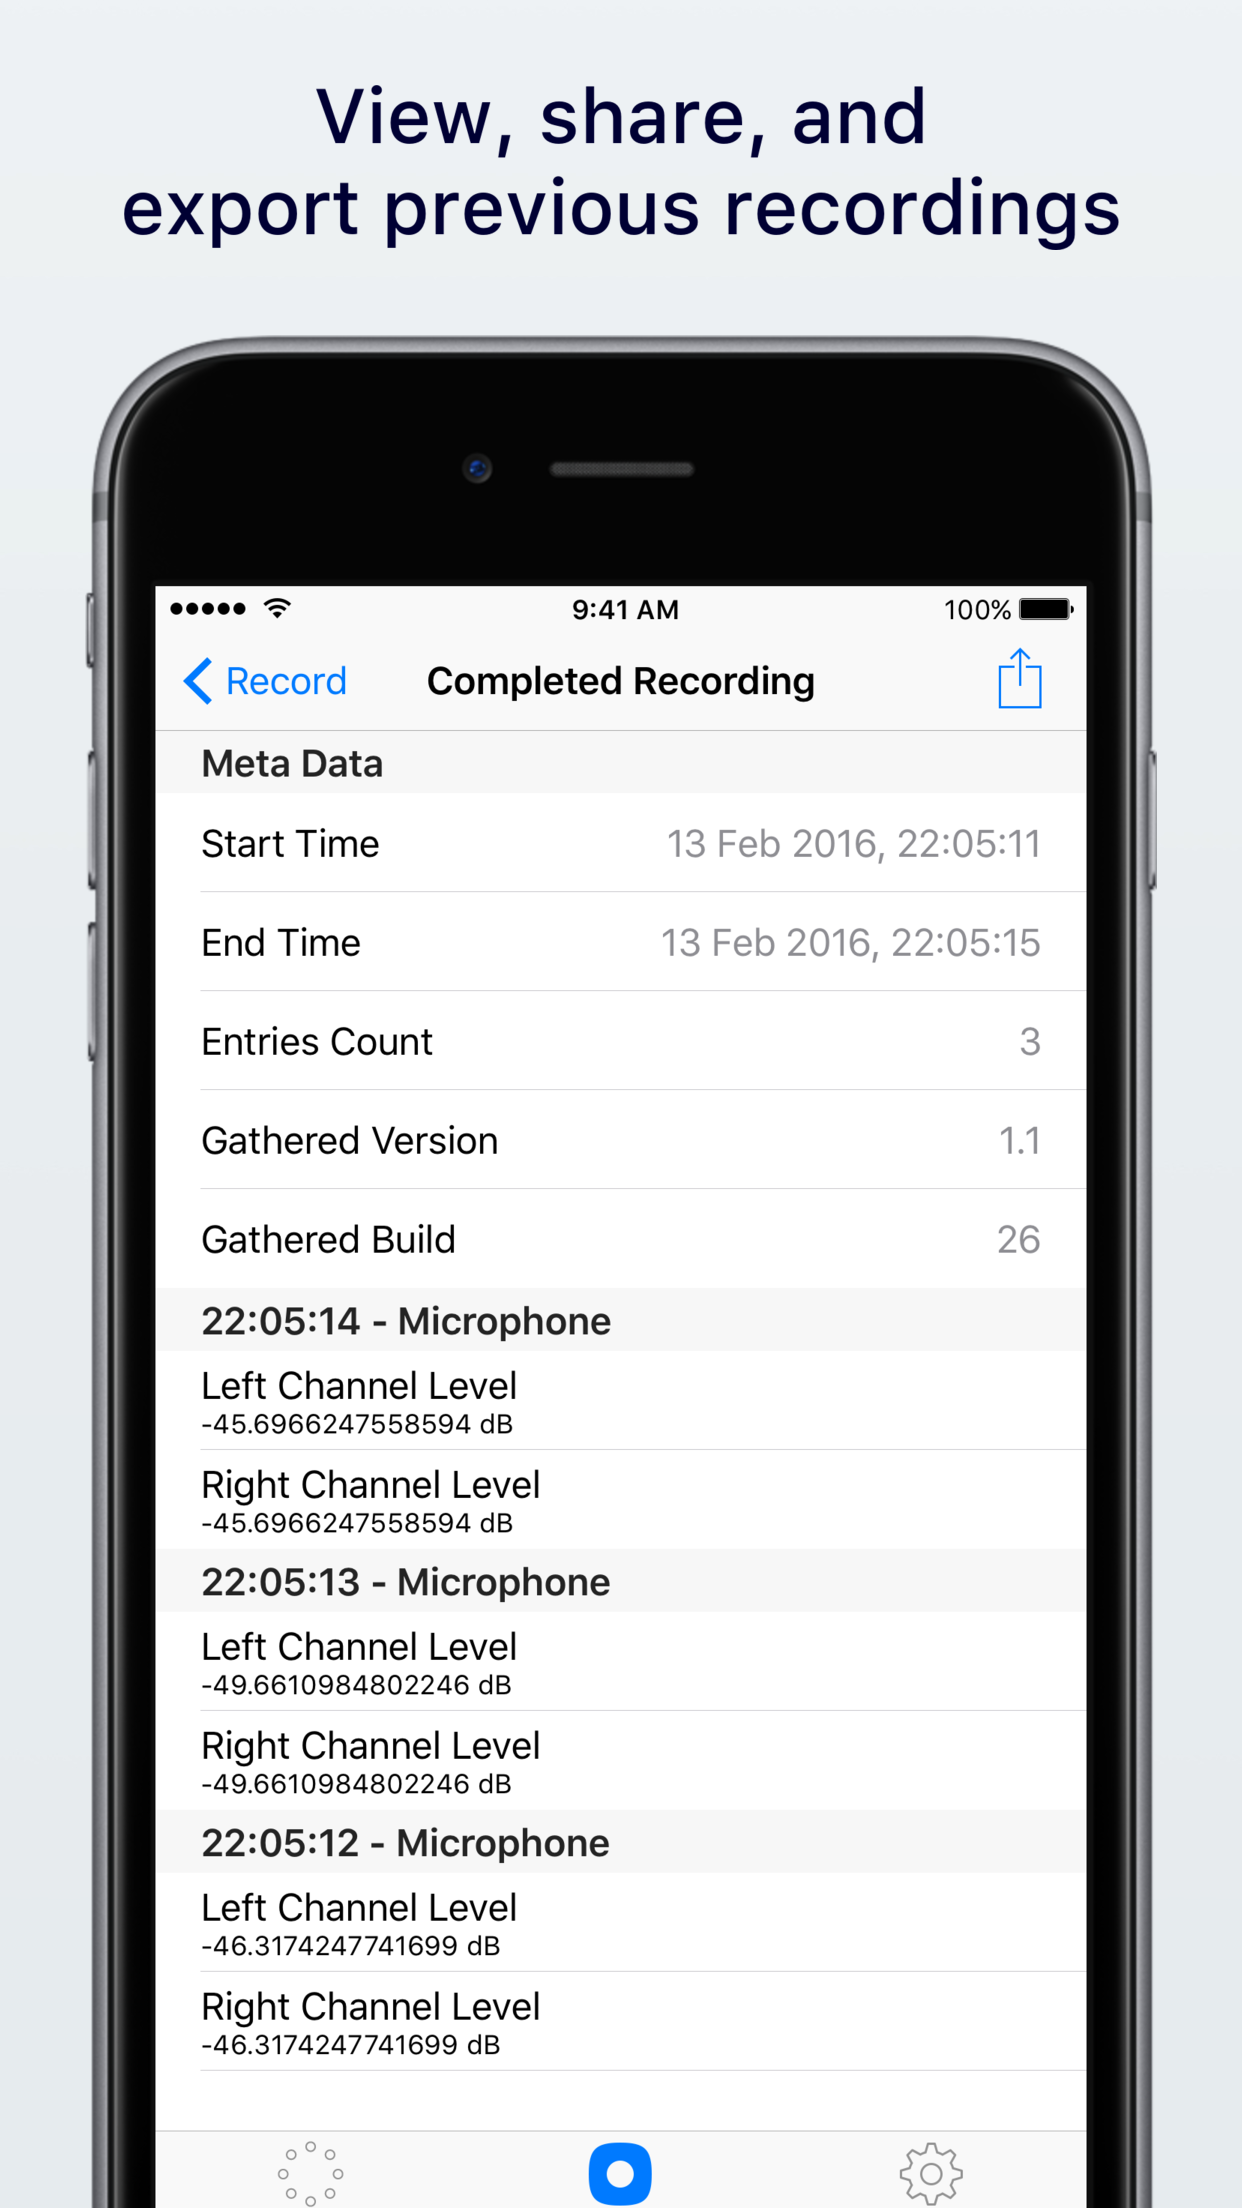 View, share, and export previous recordings